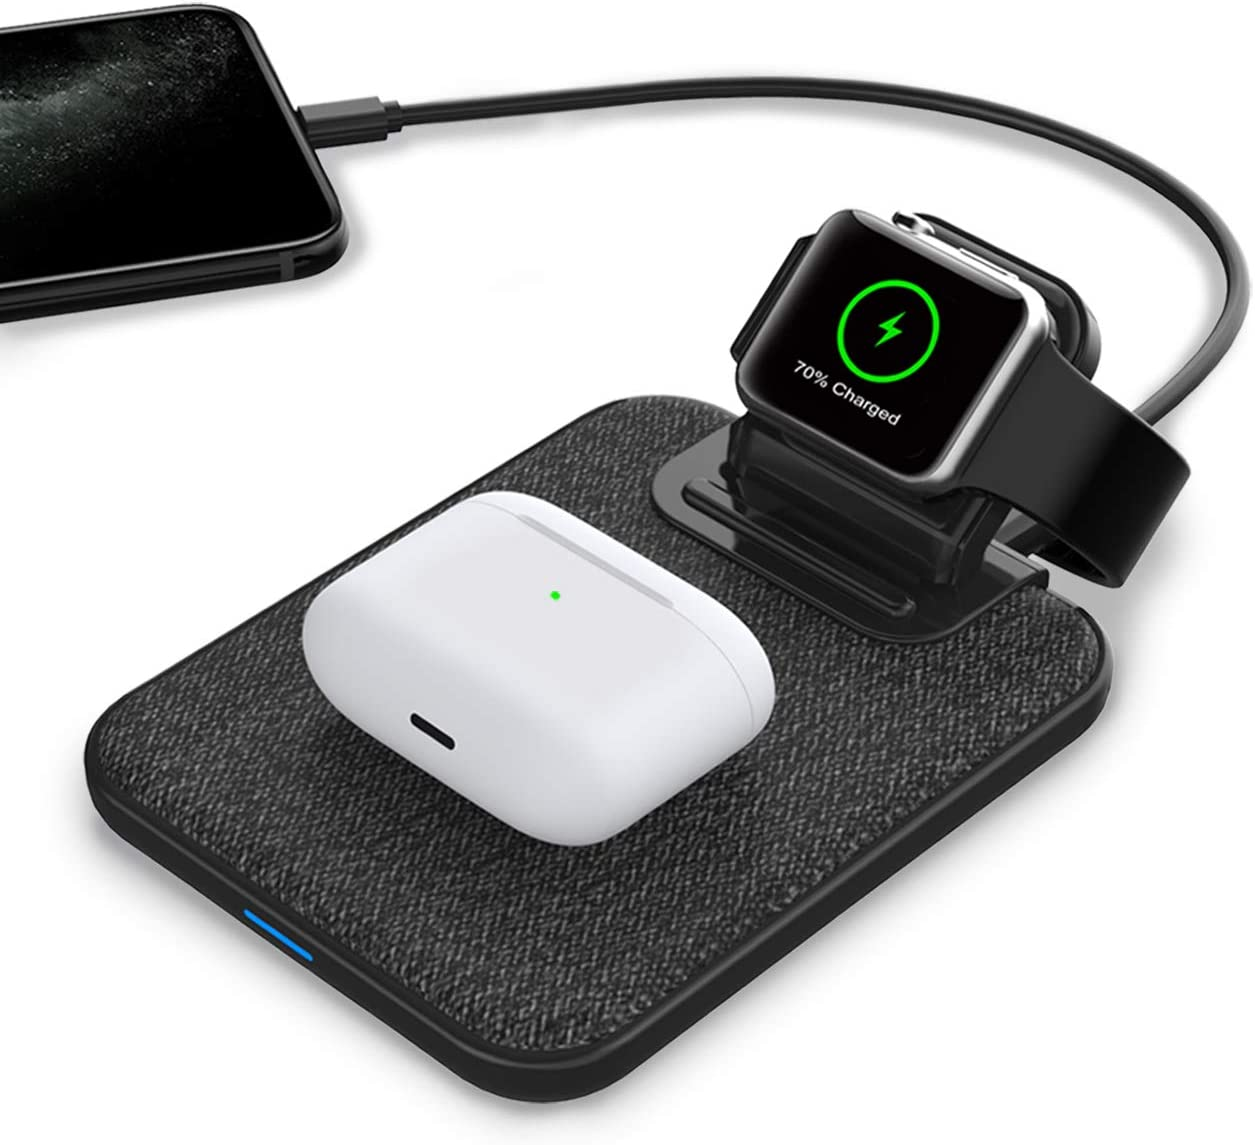 Mangotek Charger Station for Apple Product, 3 in 1 Wireless Charging Station Watch Charger Qi Fast Dock with USB Port Compatible with iWatch, AirPods and iPhone, Charge Safe with MFi Certified